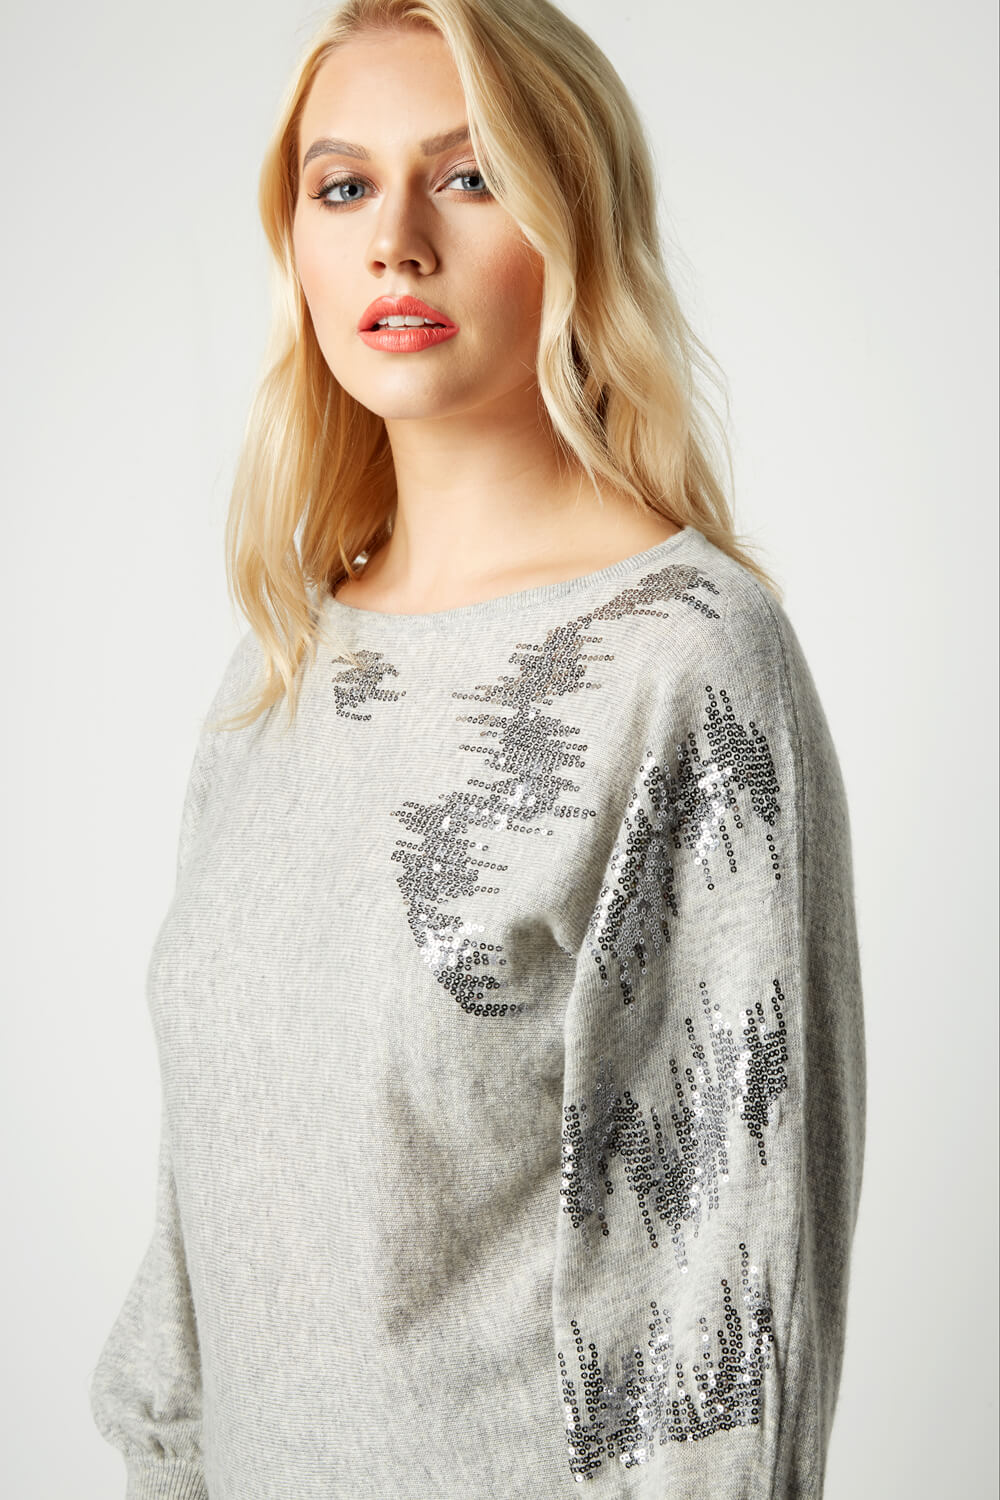 Roman-Originals-Women-039-s-Sequin-Embellished-Batwing-Sleeve-Boat-Neck-Jumper thumbnail 15